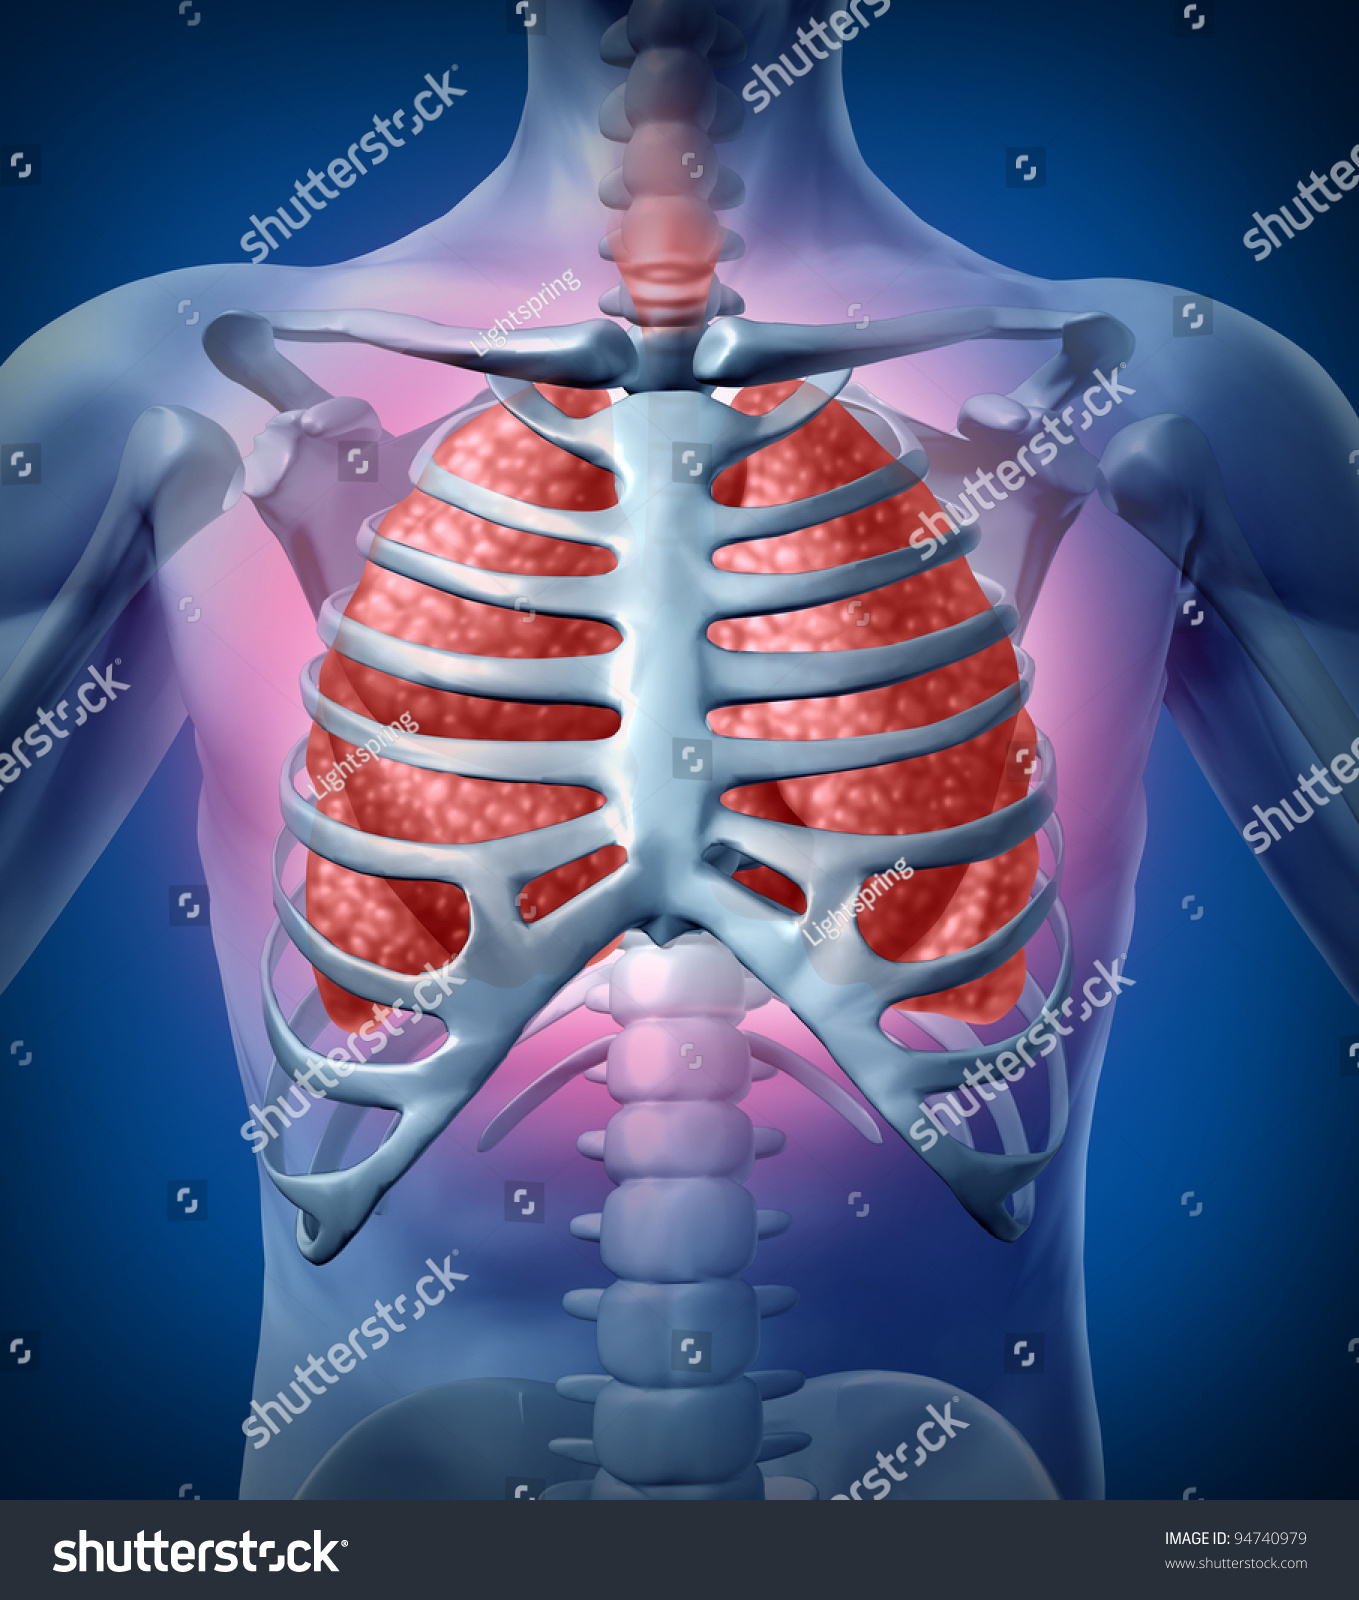 Human Lung Infection Medical Illustration With A Body